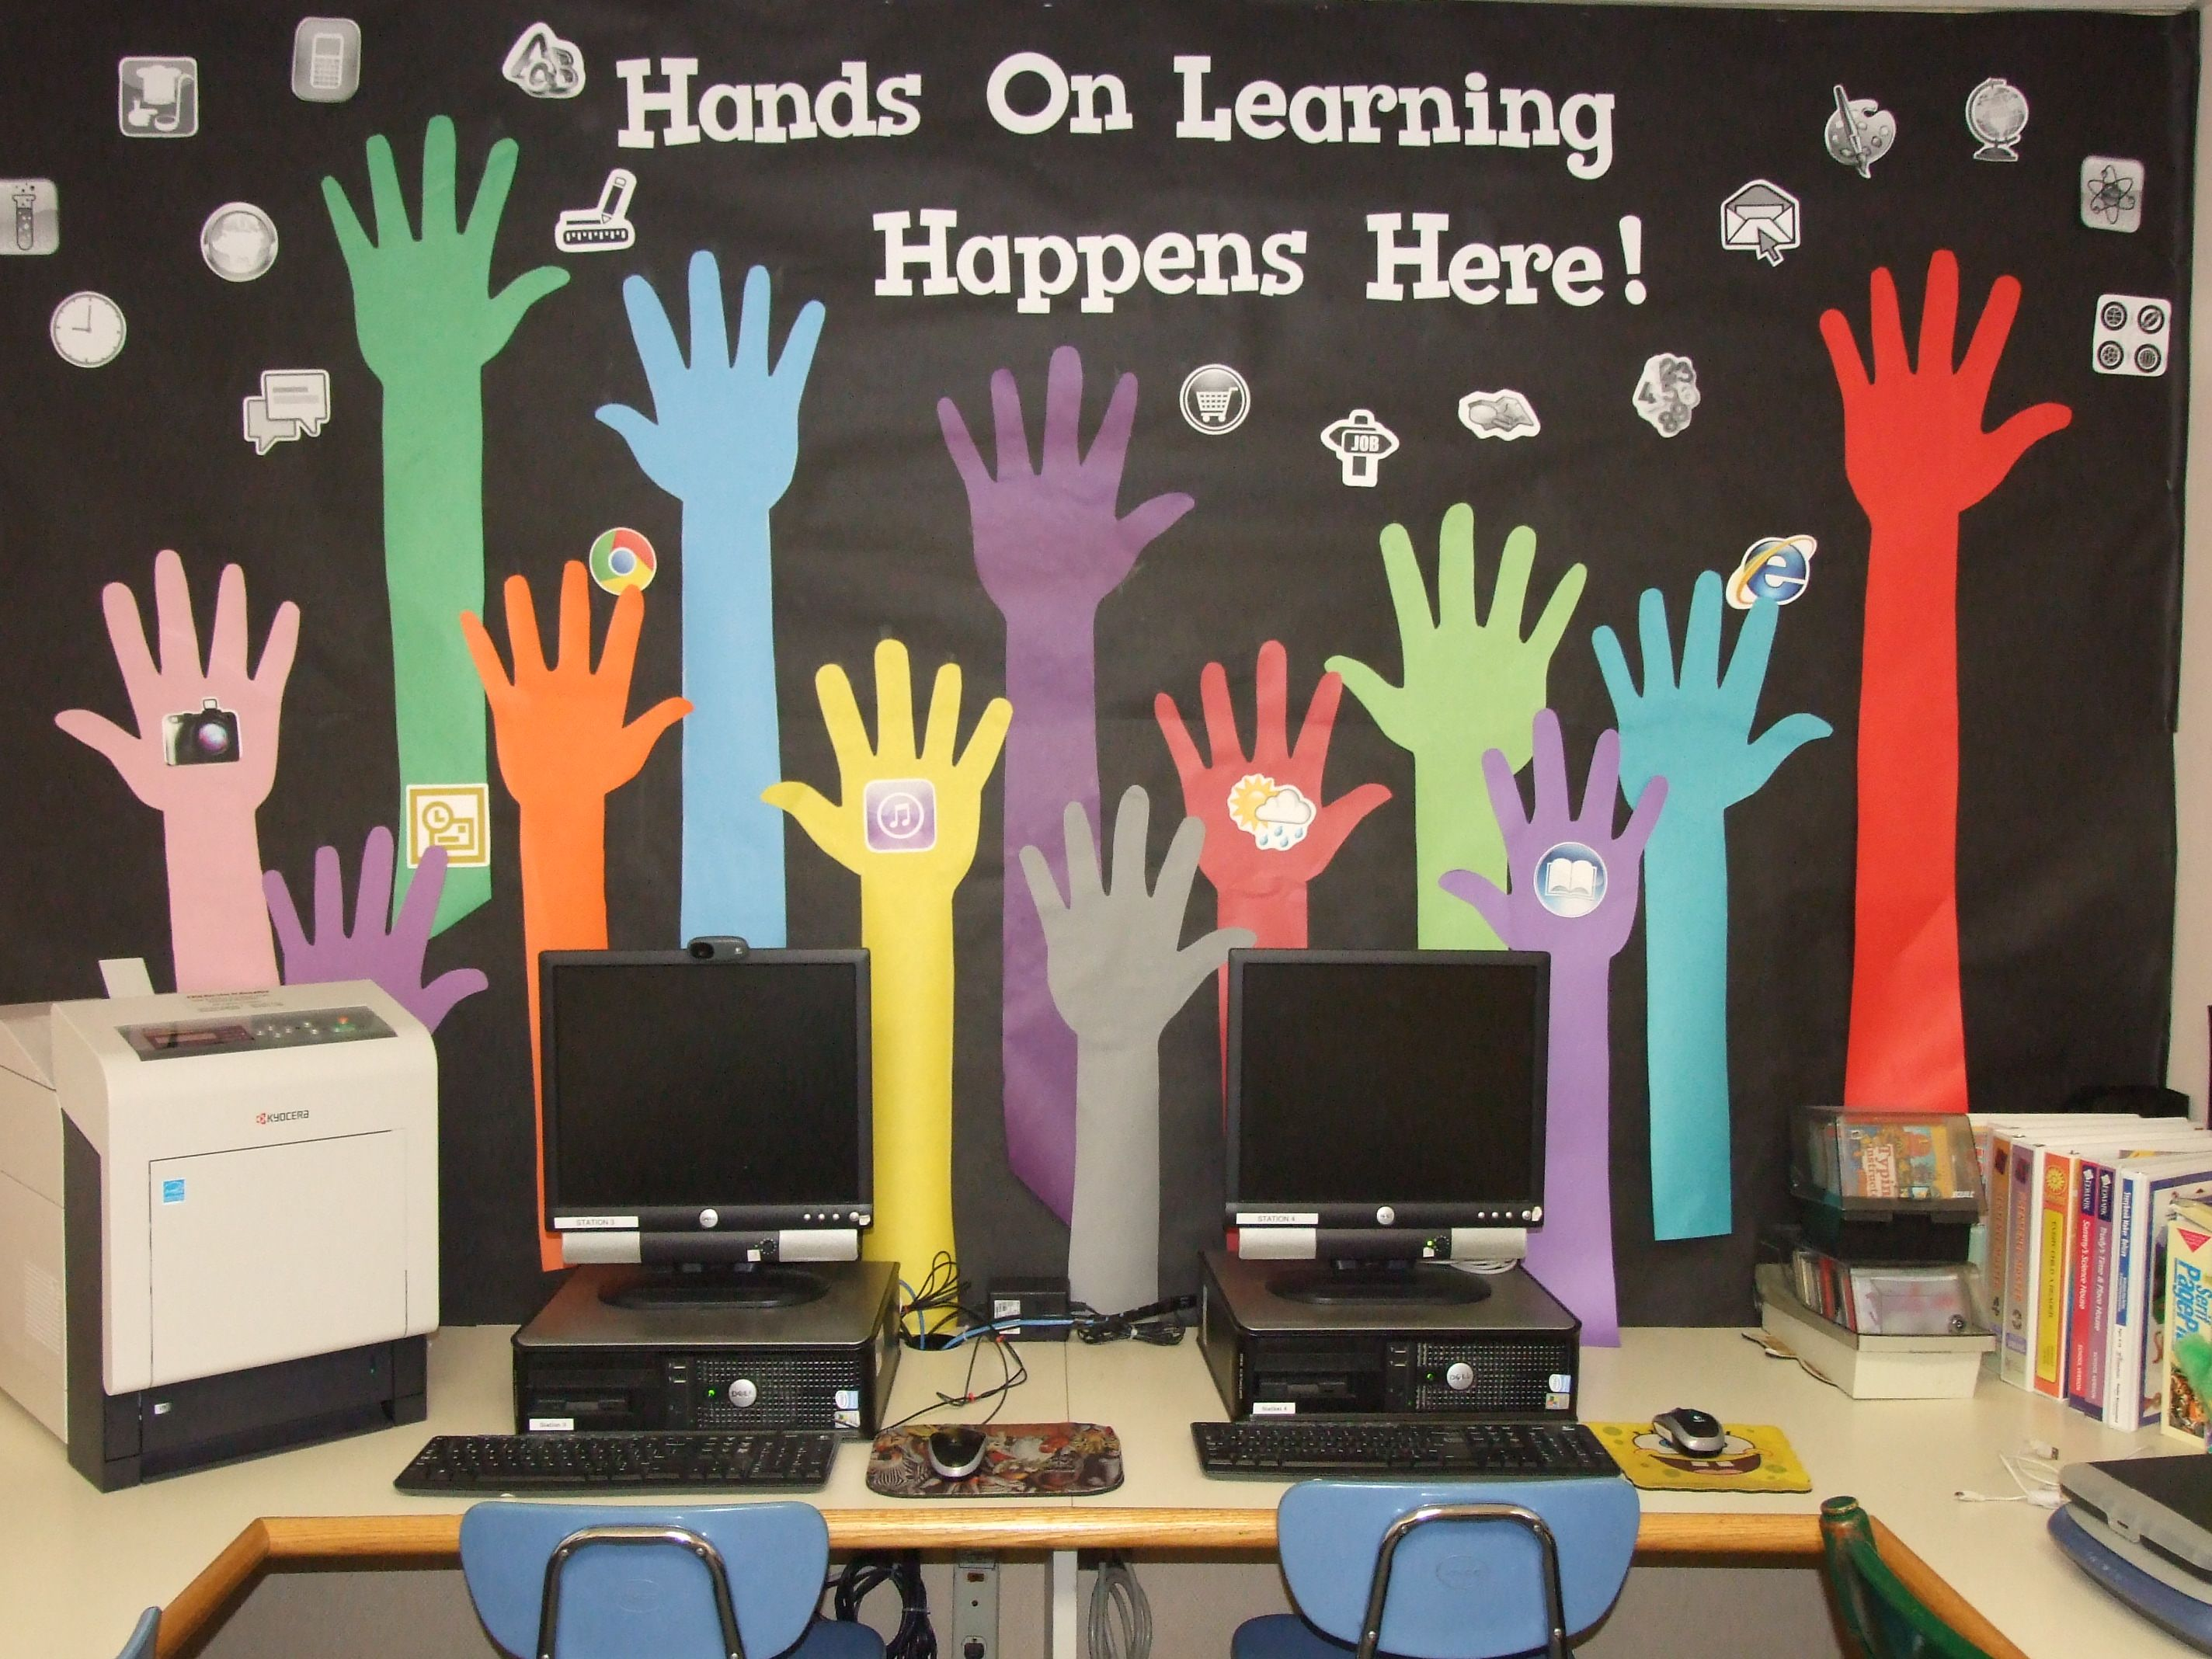 17 Best images about Bulletin Boards on Pinterest | Computer lab ...